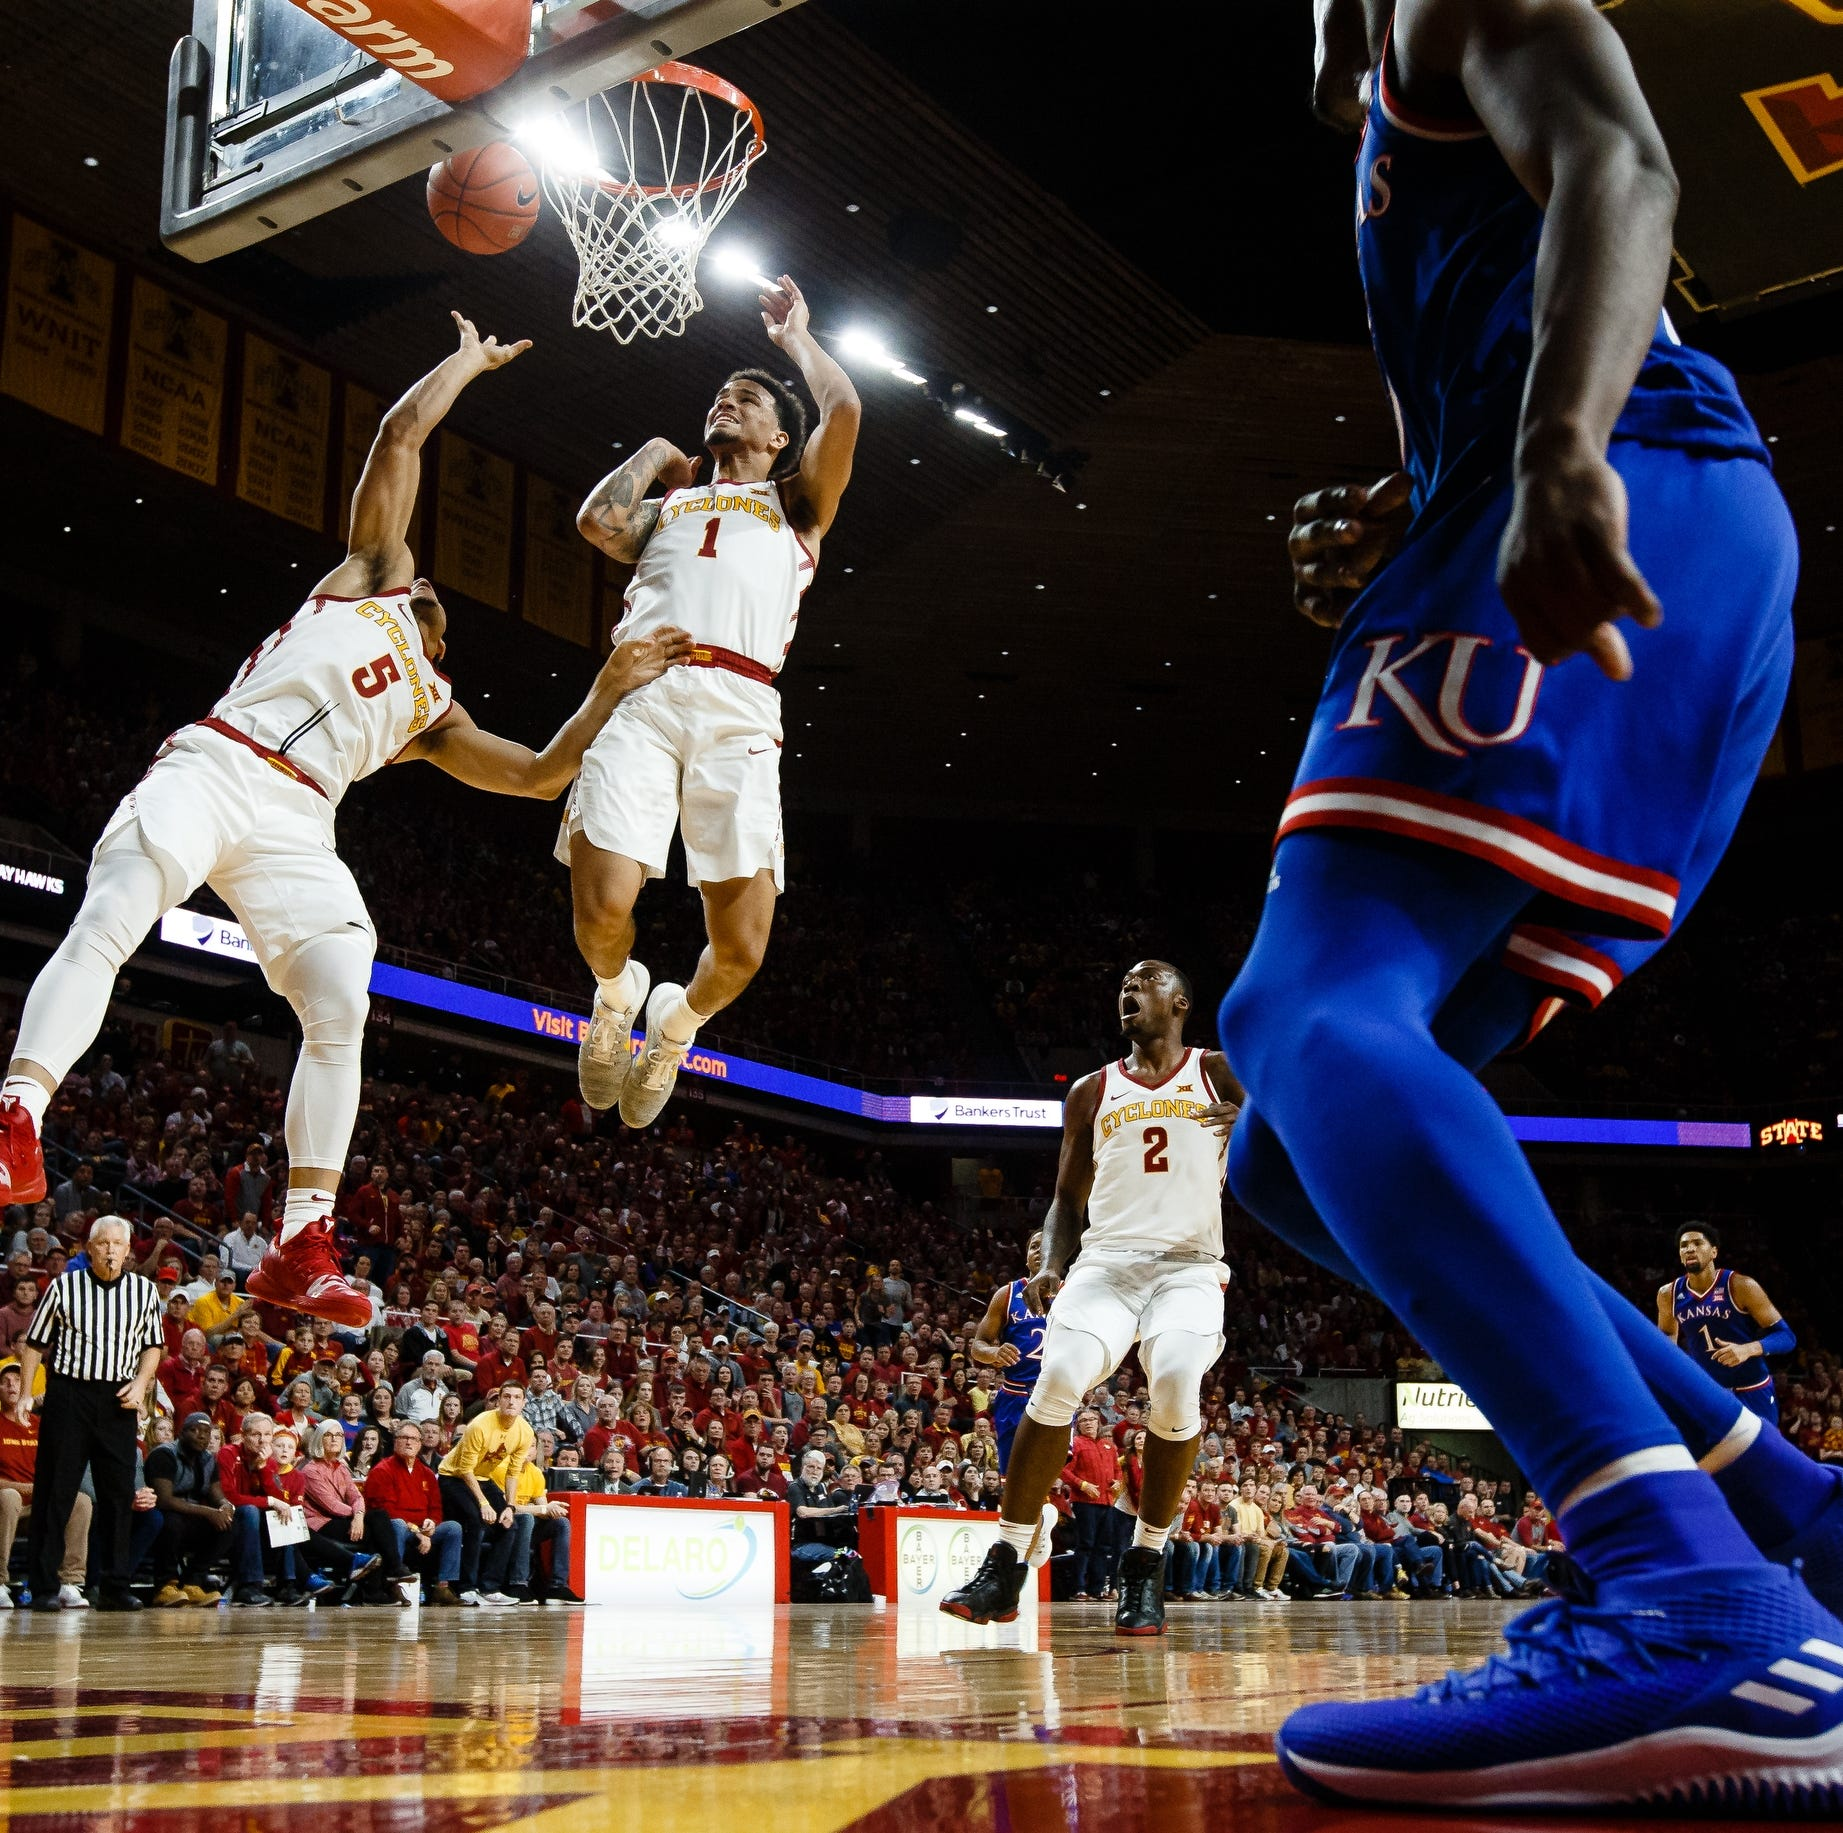 Iowa State star Lindell Wigginton showing signs of his old self